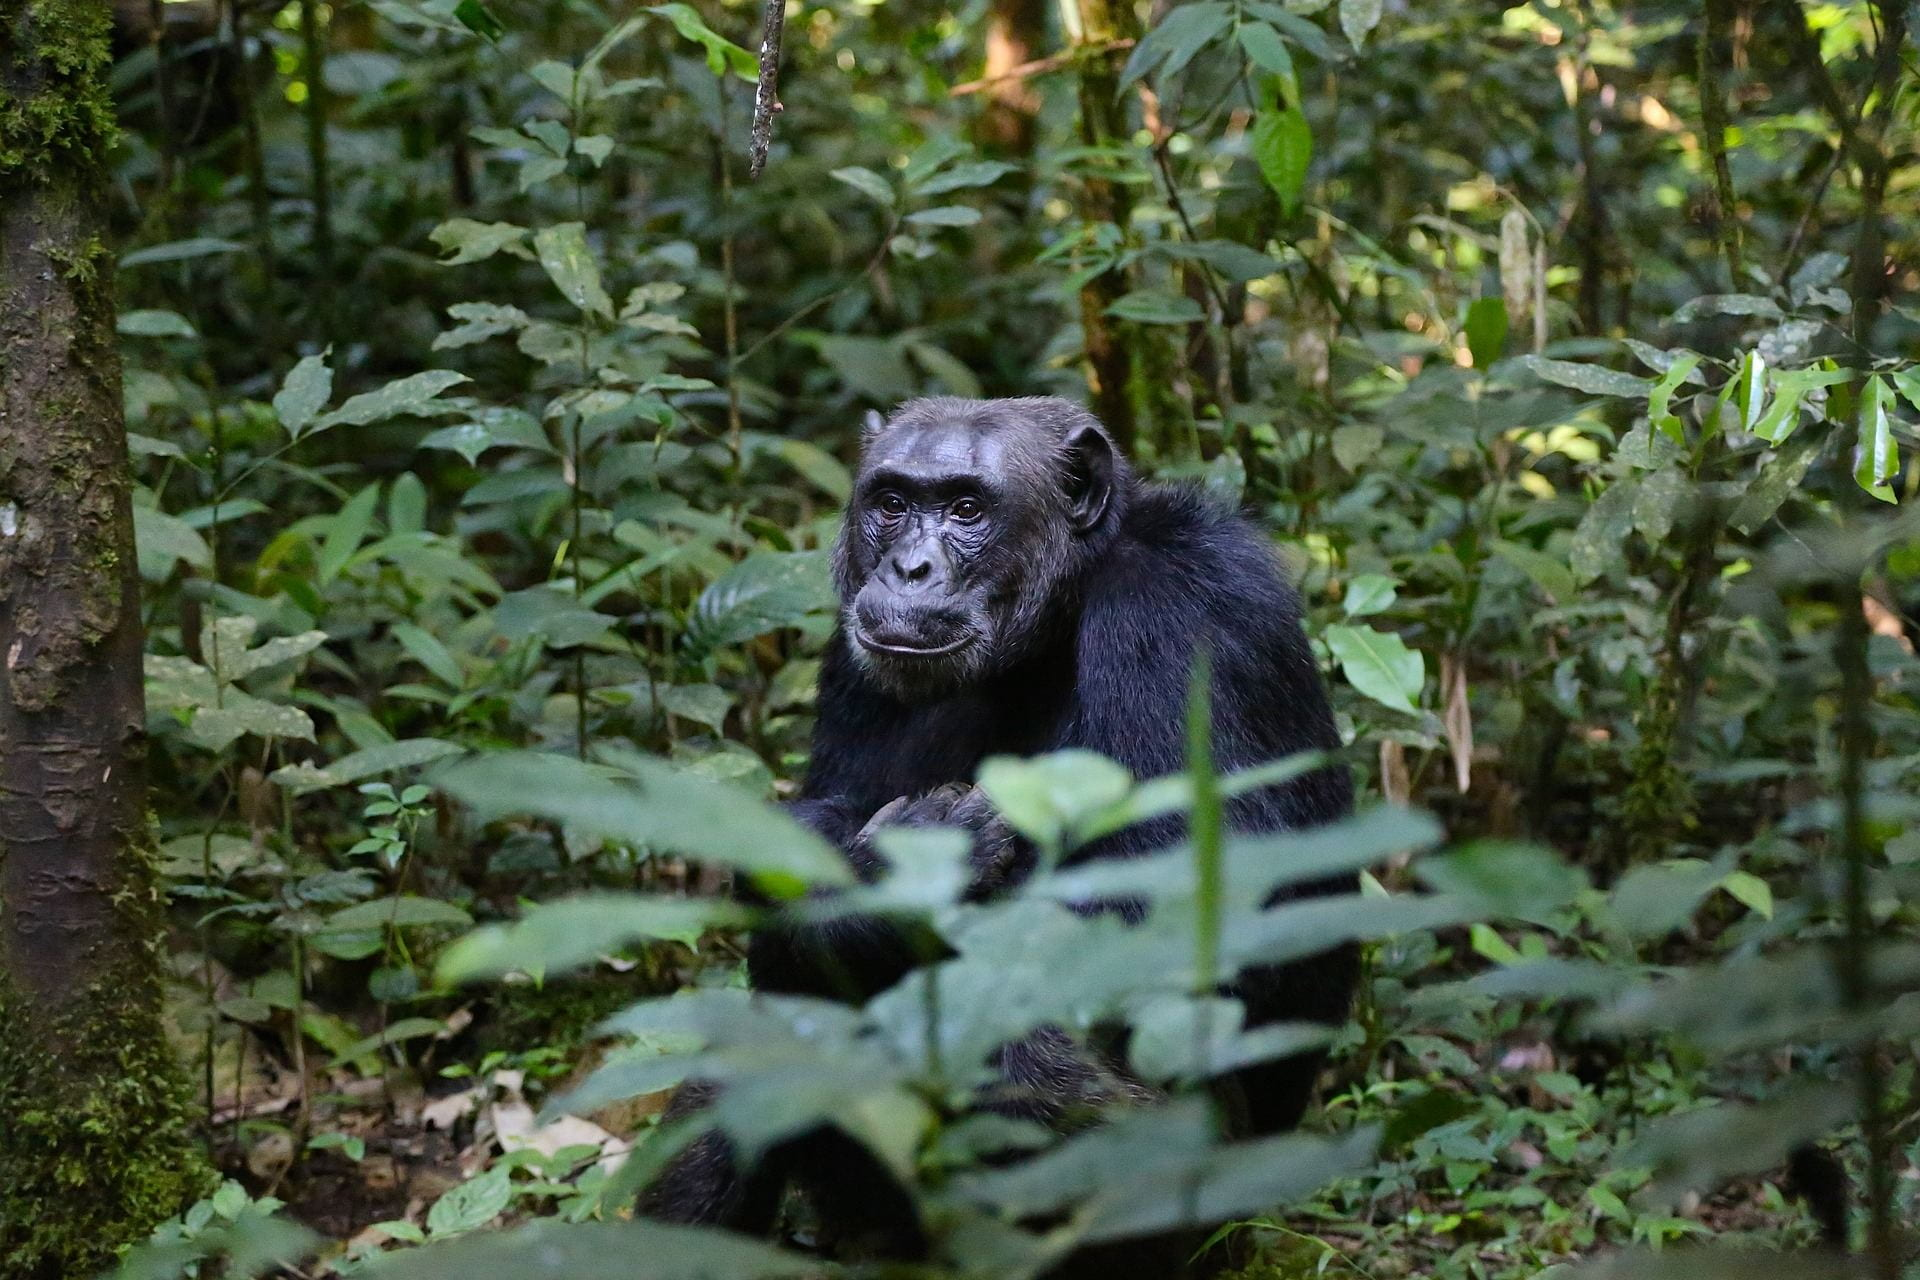 A male chimpanzee sits alone in the forest looking off past the camera.